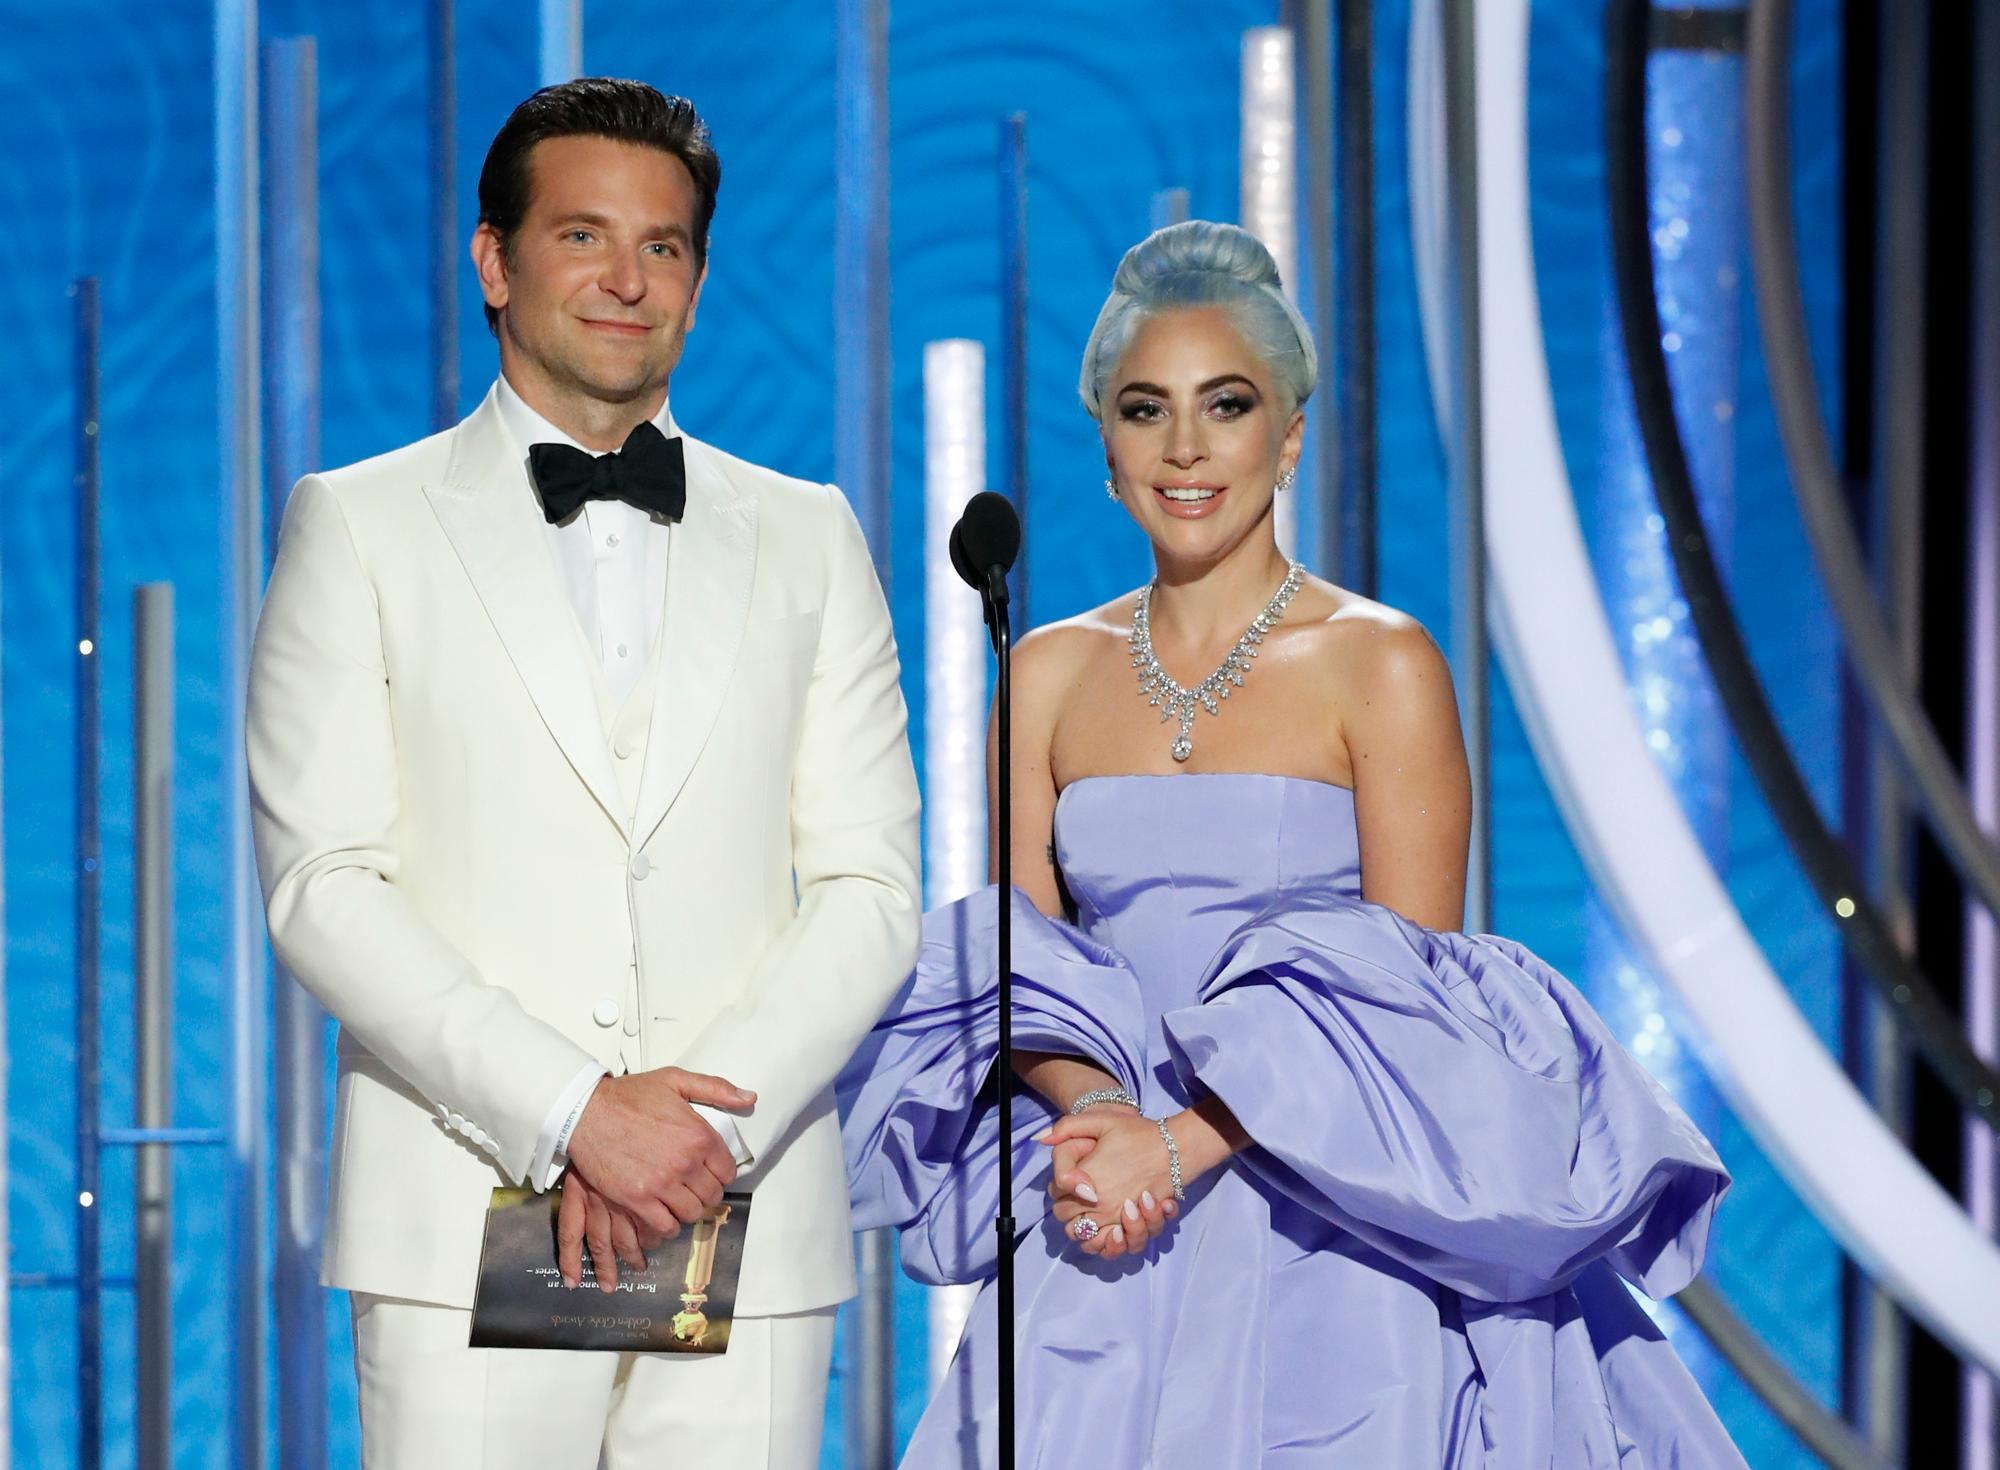 This image released by NBC shows Bradley Cooper, left, and Lady Gaga presenting the award for best actor in a TV comedy series at the 76th Annual Golden Globe Awards at the Beverly Hilton Hotel on Sunday, Jan. 6, 2019, in Beverly Hills, Calif. (Paul Drinkwater/NBC via AP)